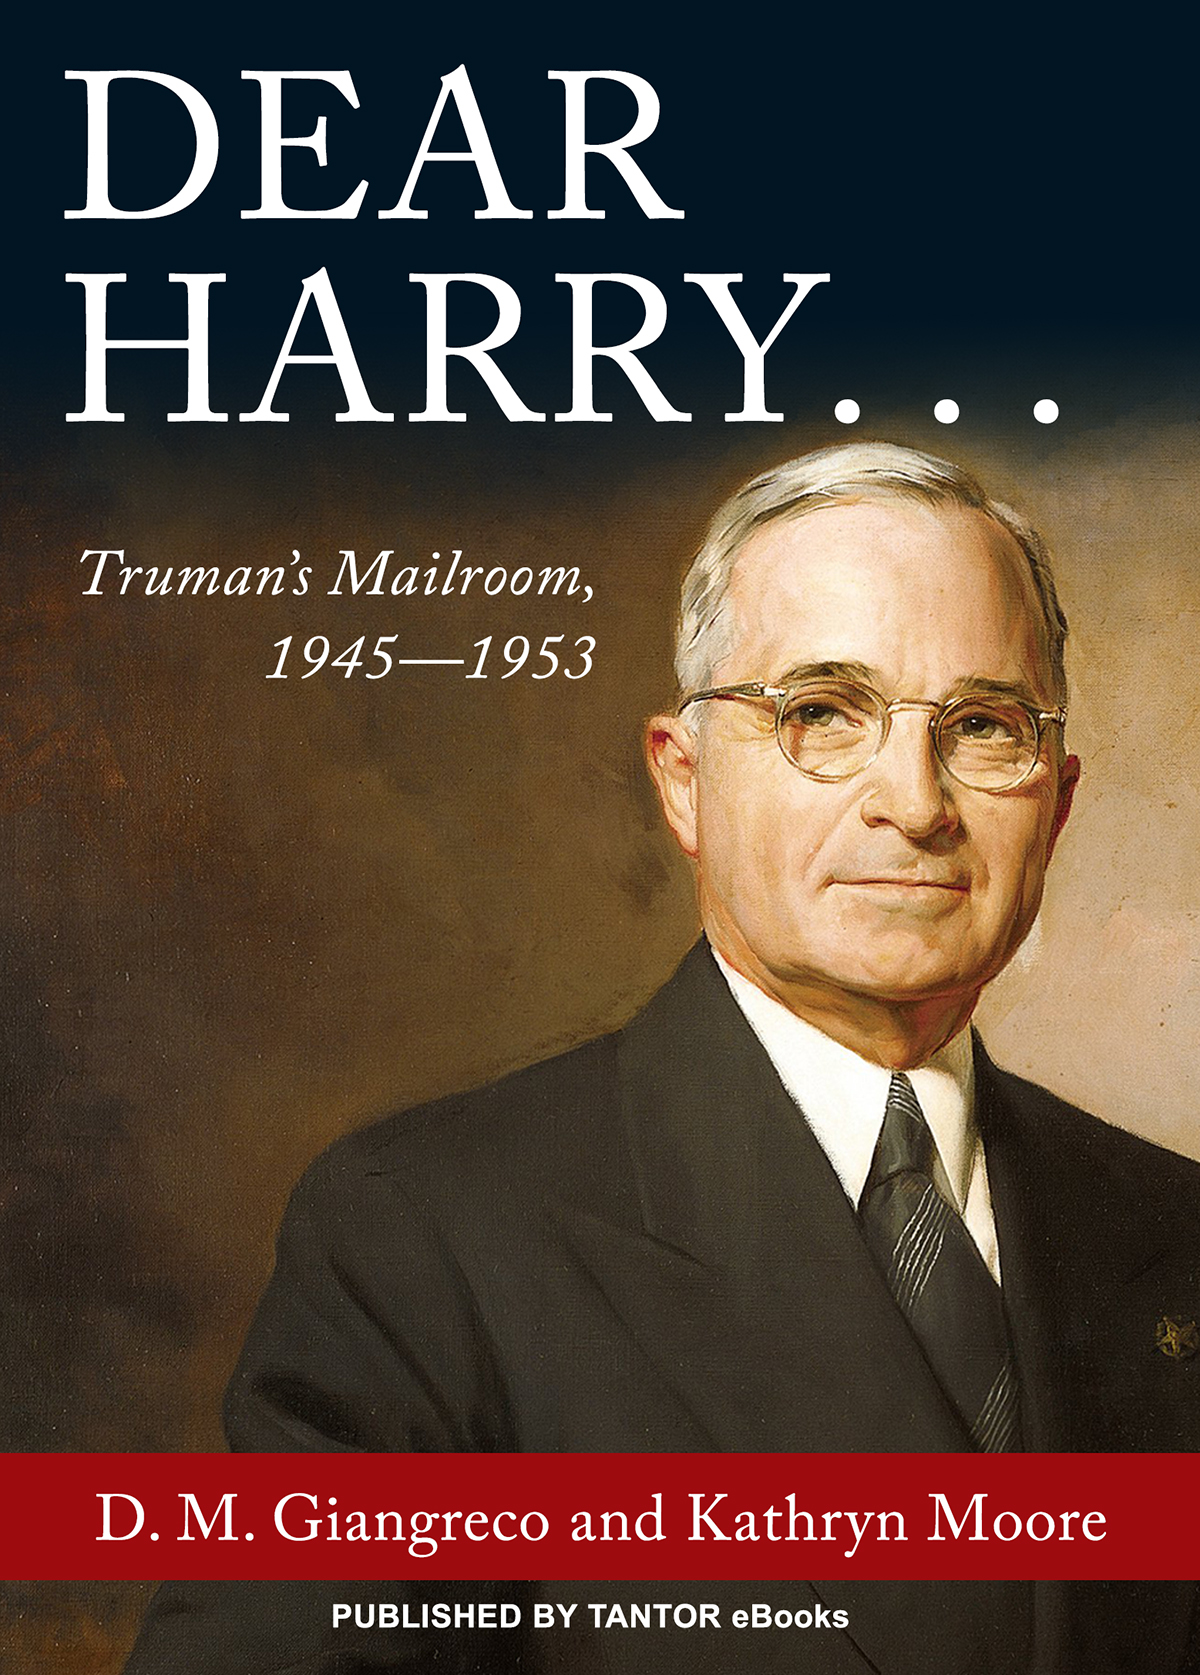 Dear Harry...: Truman's Mailroom, 1945-1953